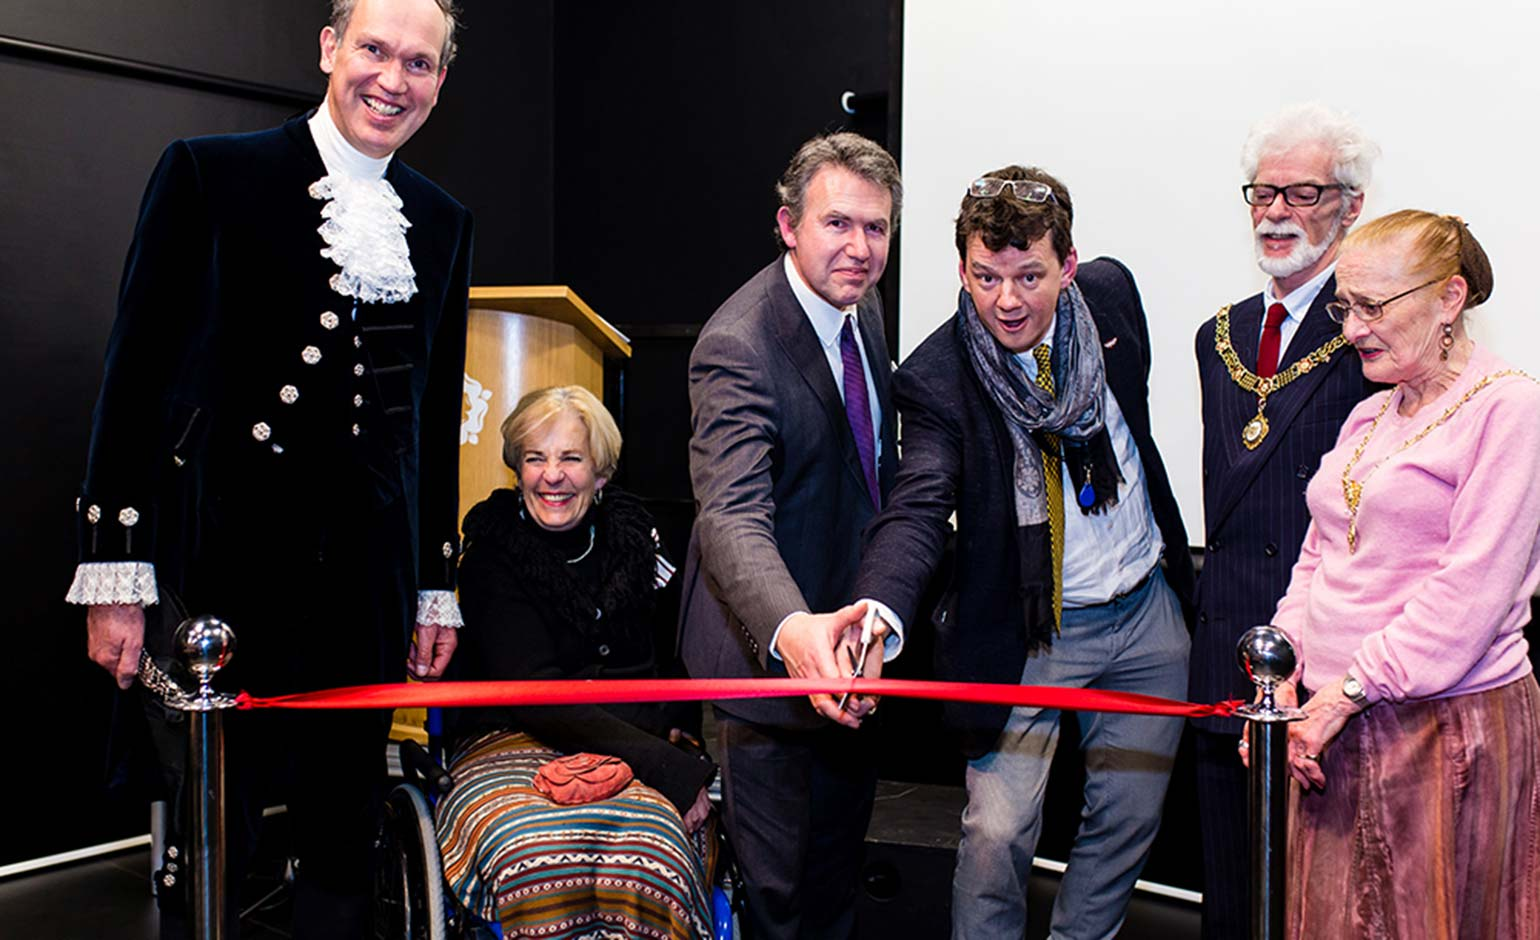 New state-of-the art drama centre opened at King Edward's School in Bath